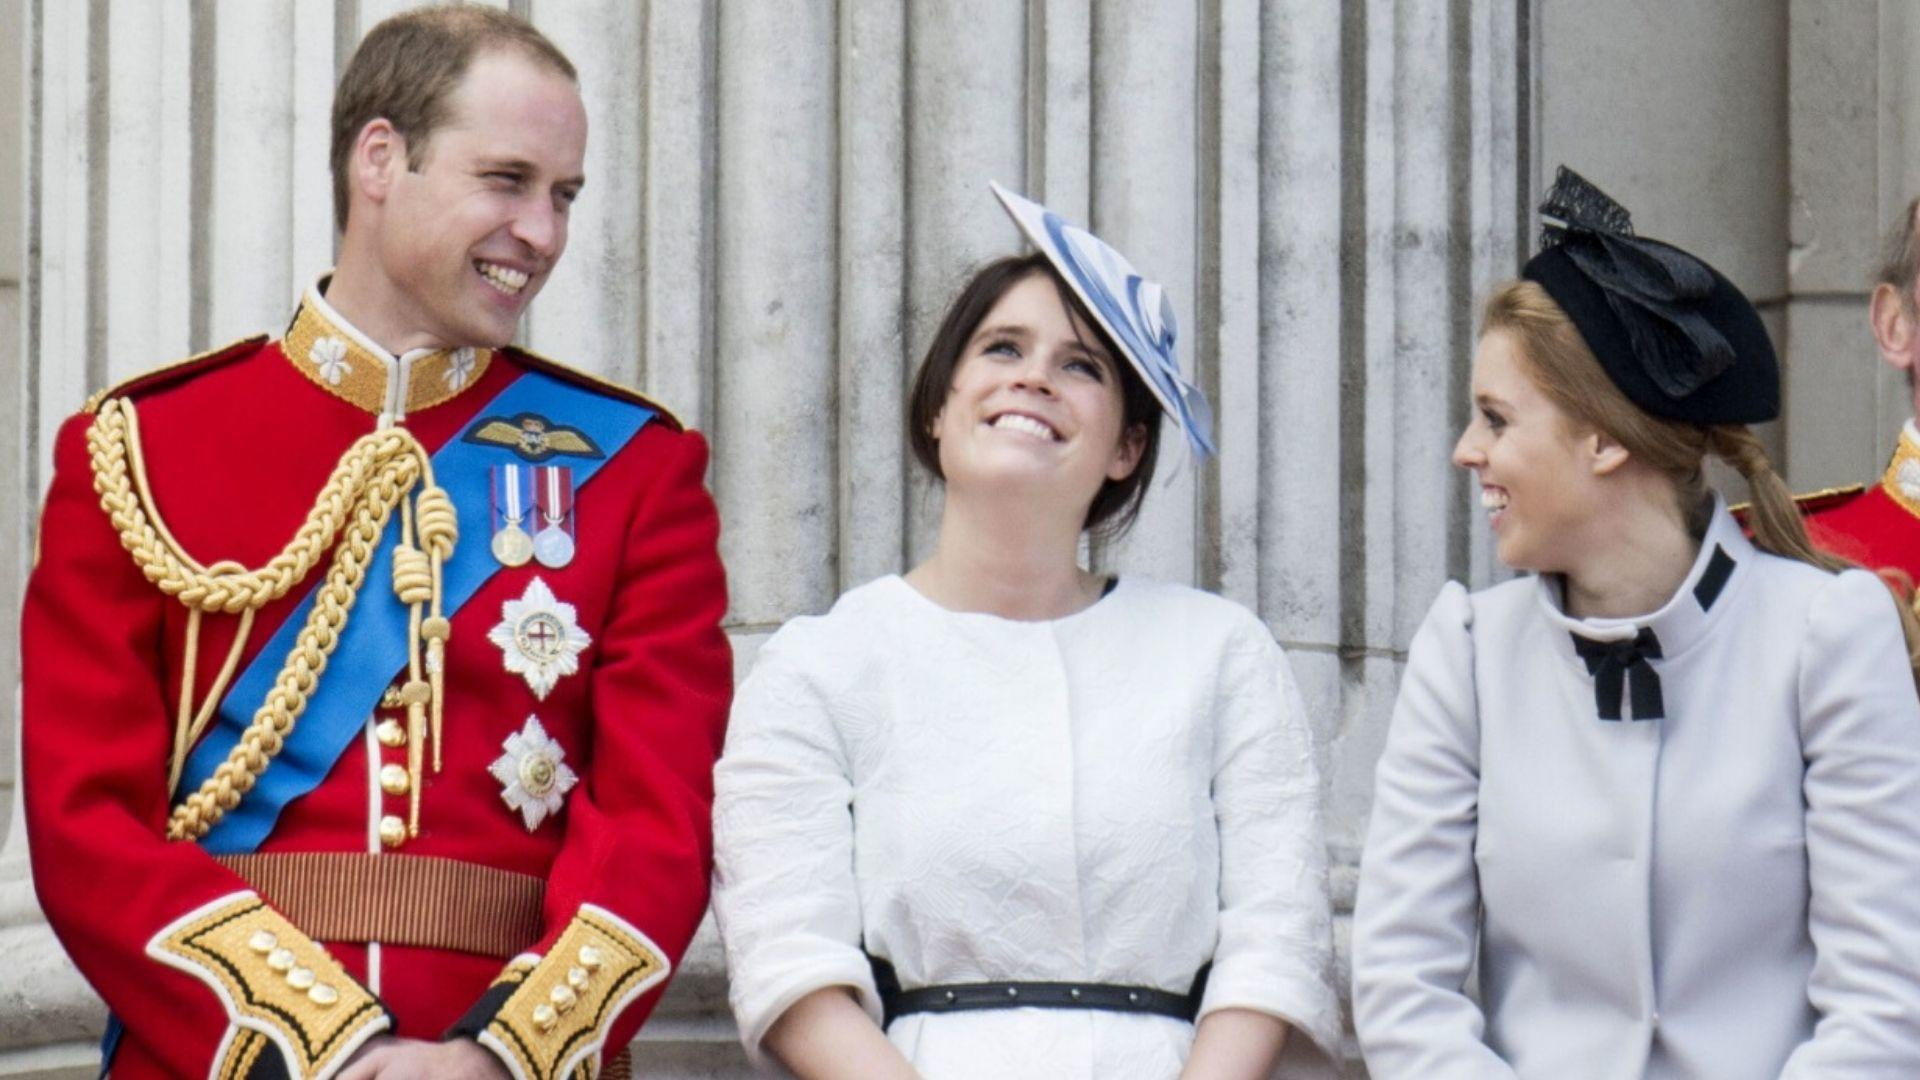 Princess Beatrice And Eugenie Could Take Over Meghan And Harry's Royal Duties